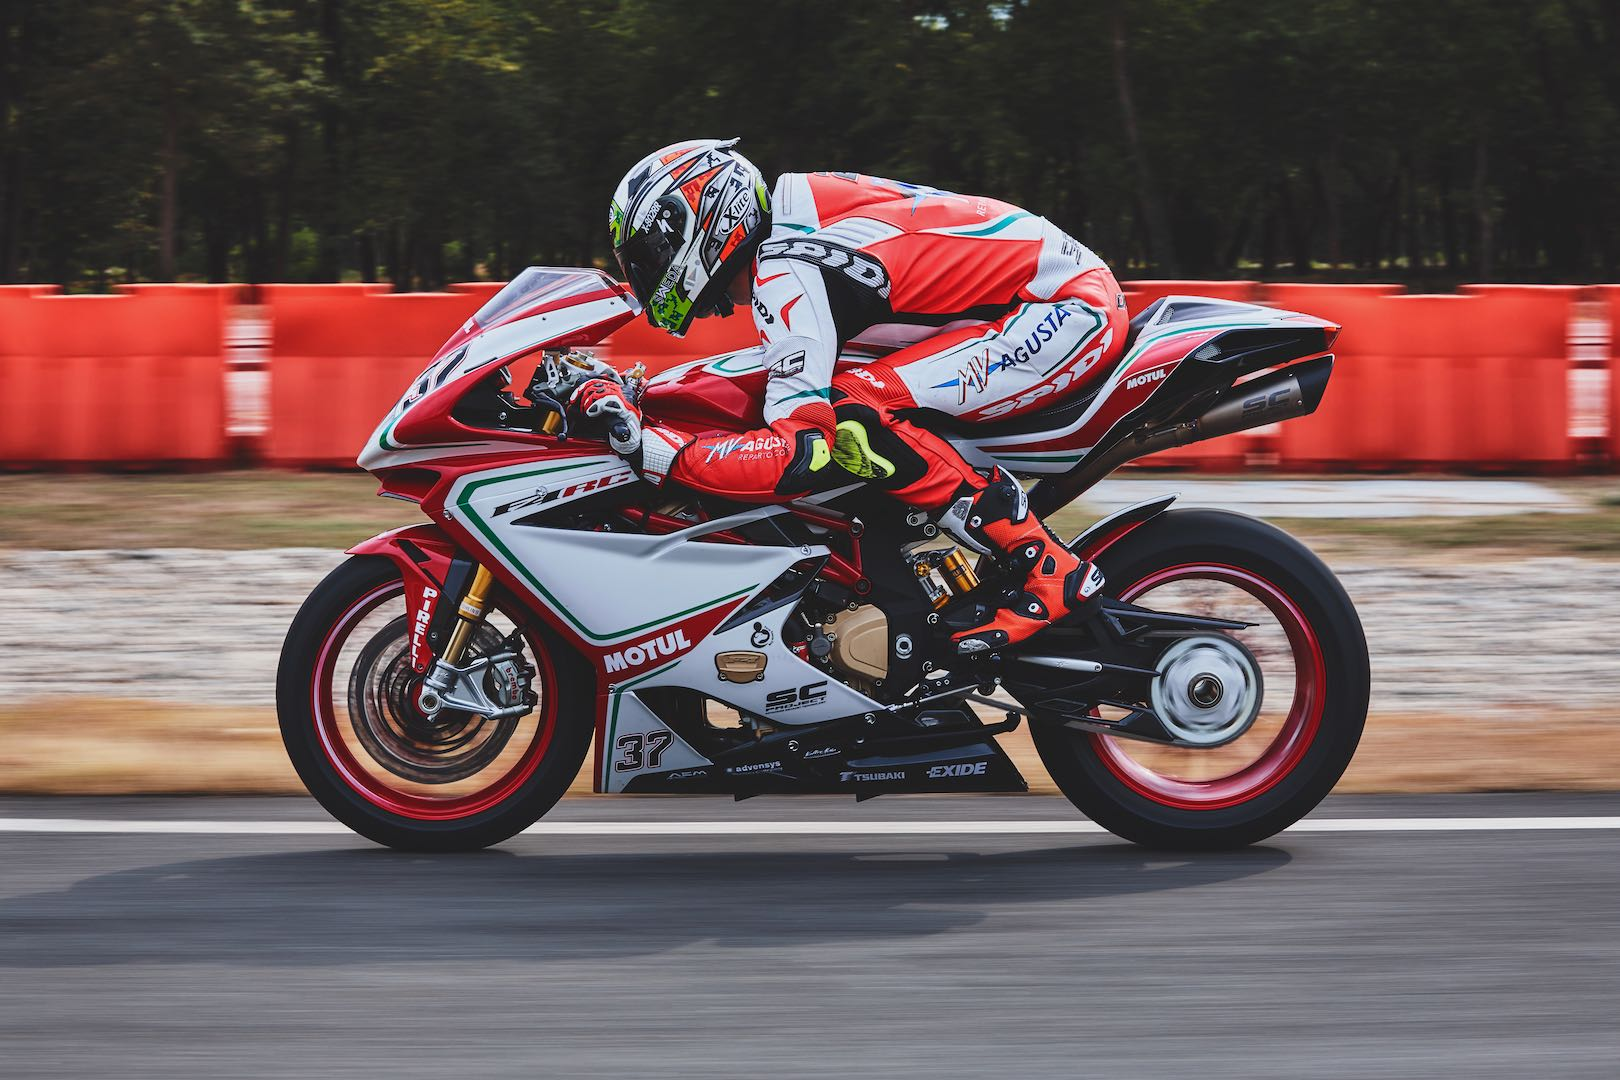 2018 MV Agusta F4 RC top speed